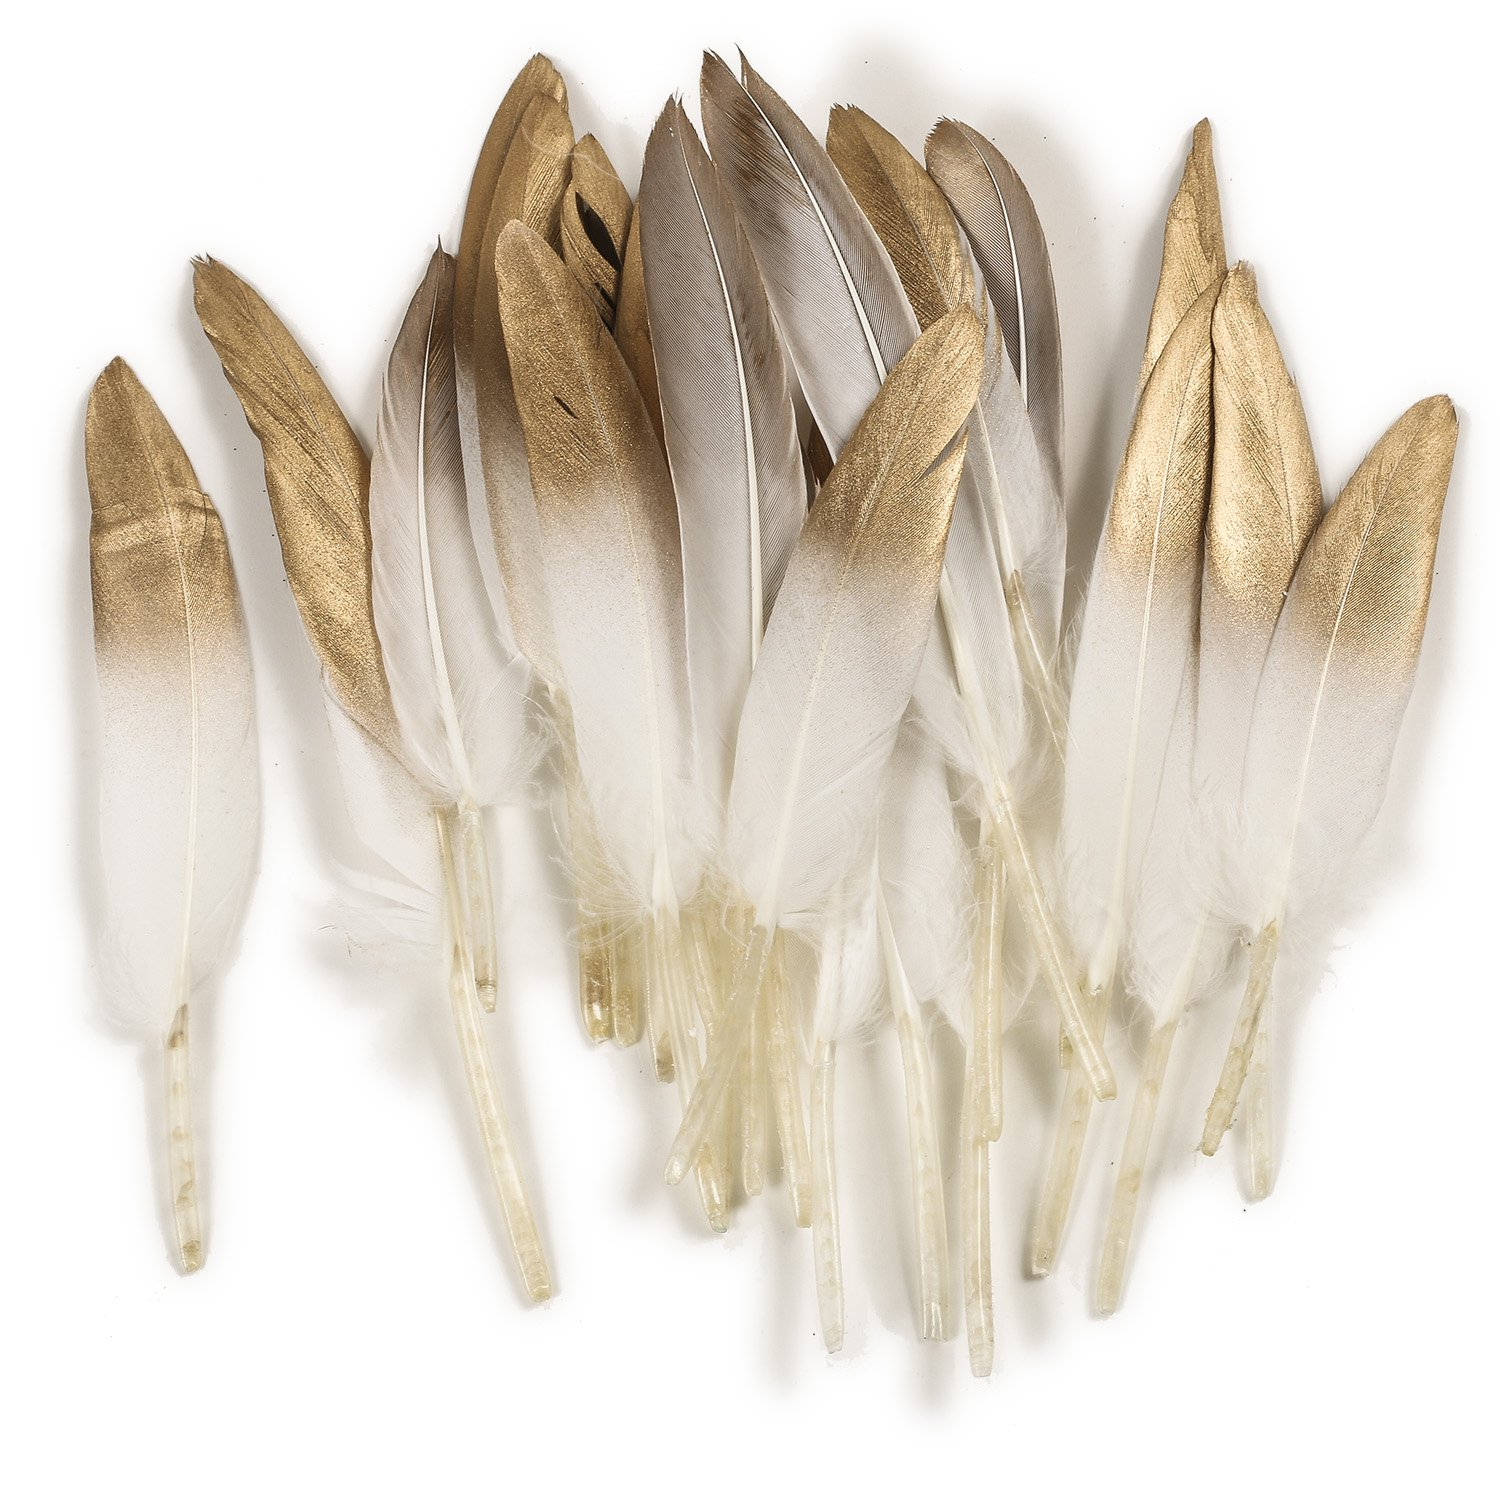 Ling's moment 25pcs Gold Dipped Off White Feathers Boho Wedding Party Baby Shower Nursery Home Decor Ling' s moment 4336854684